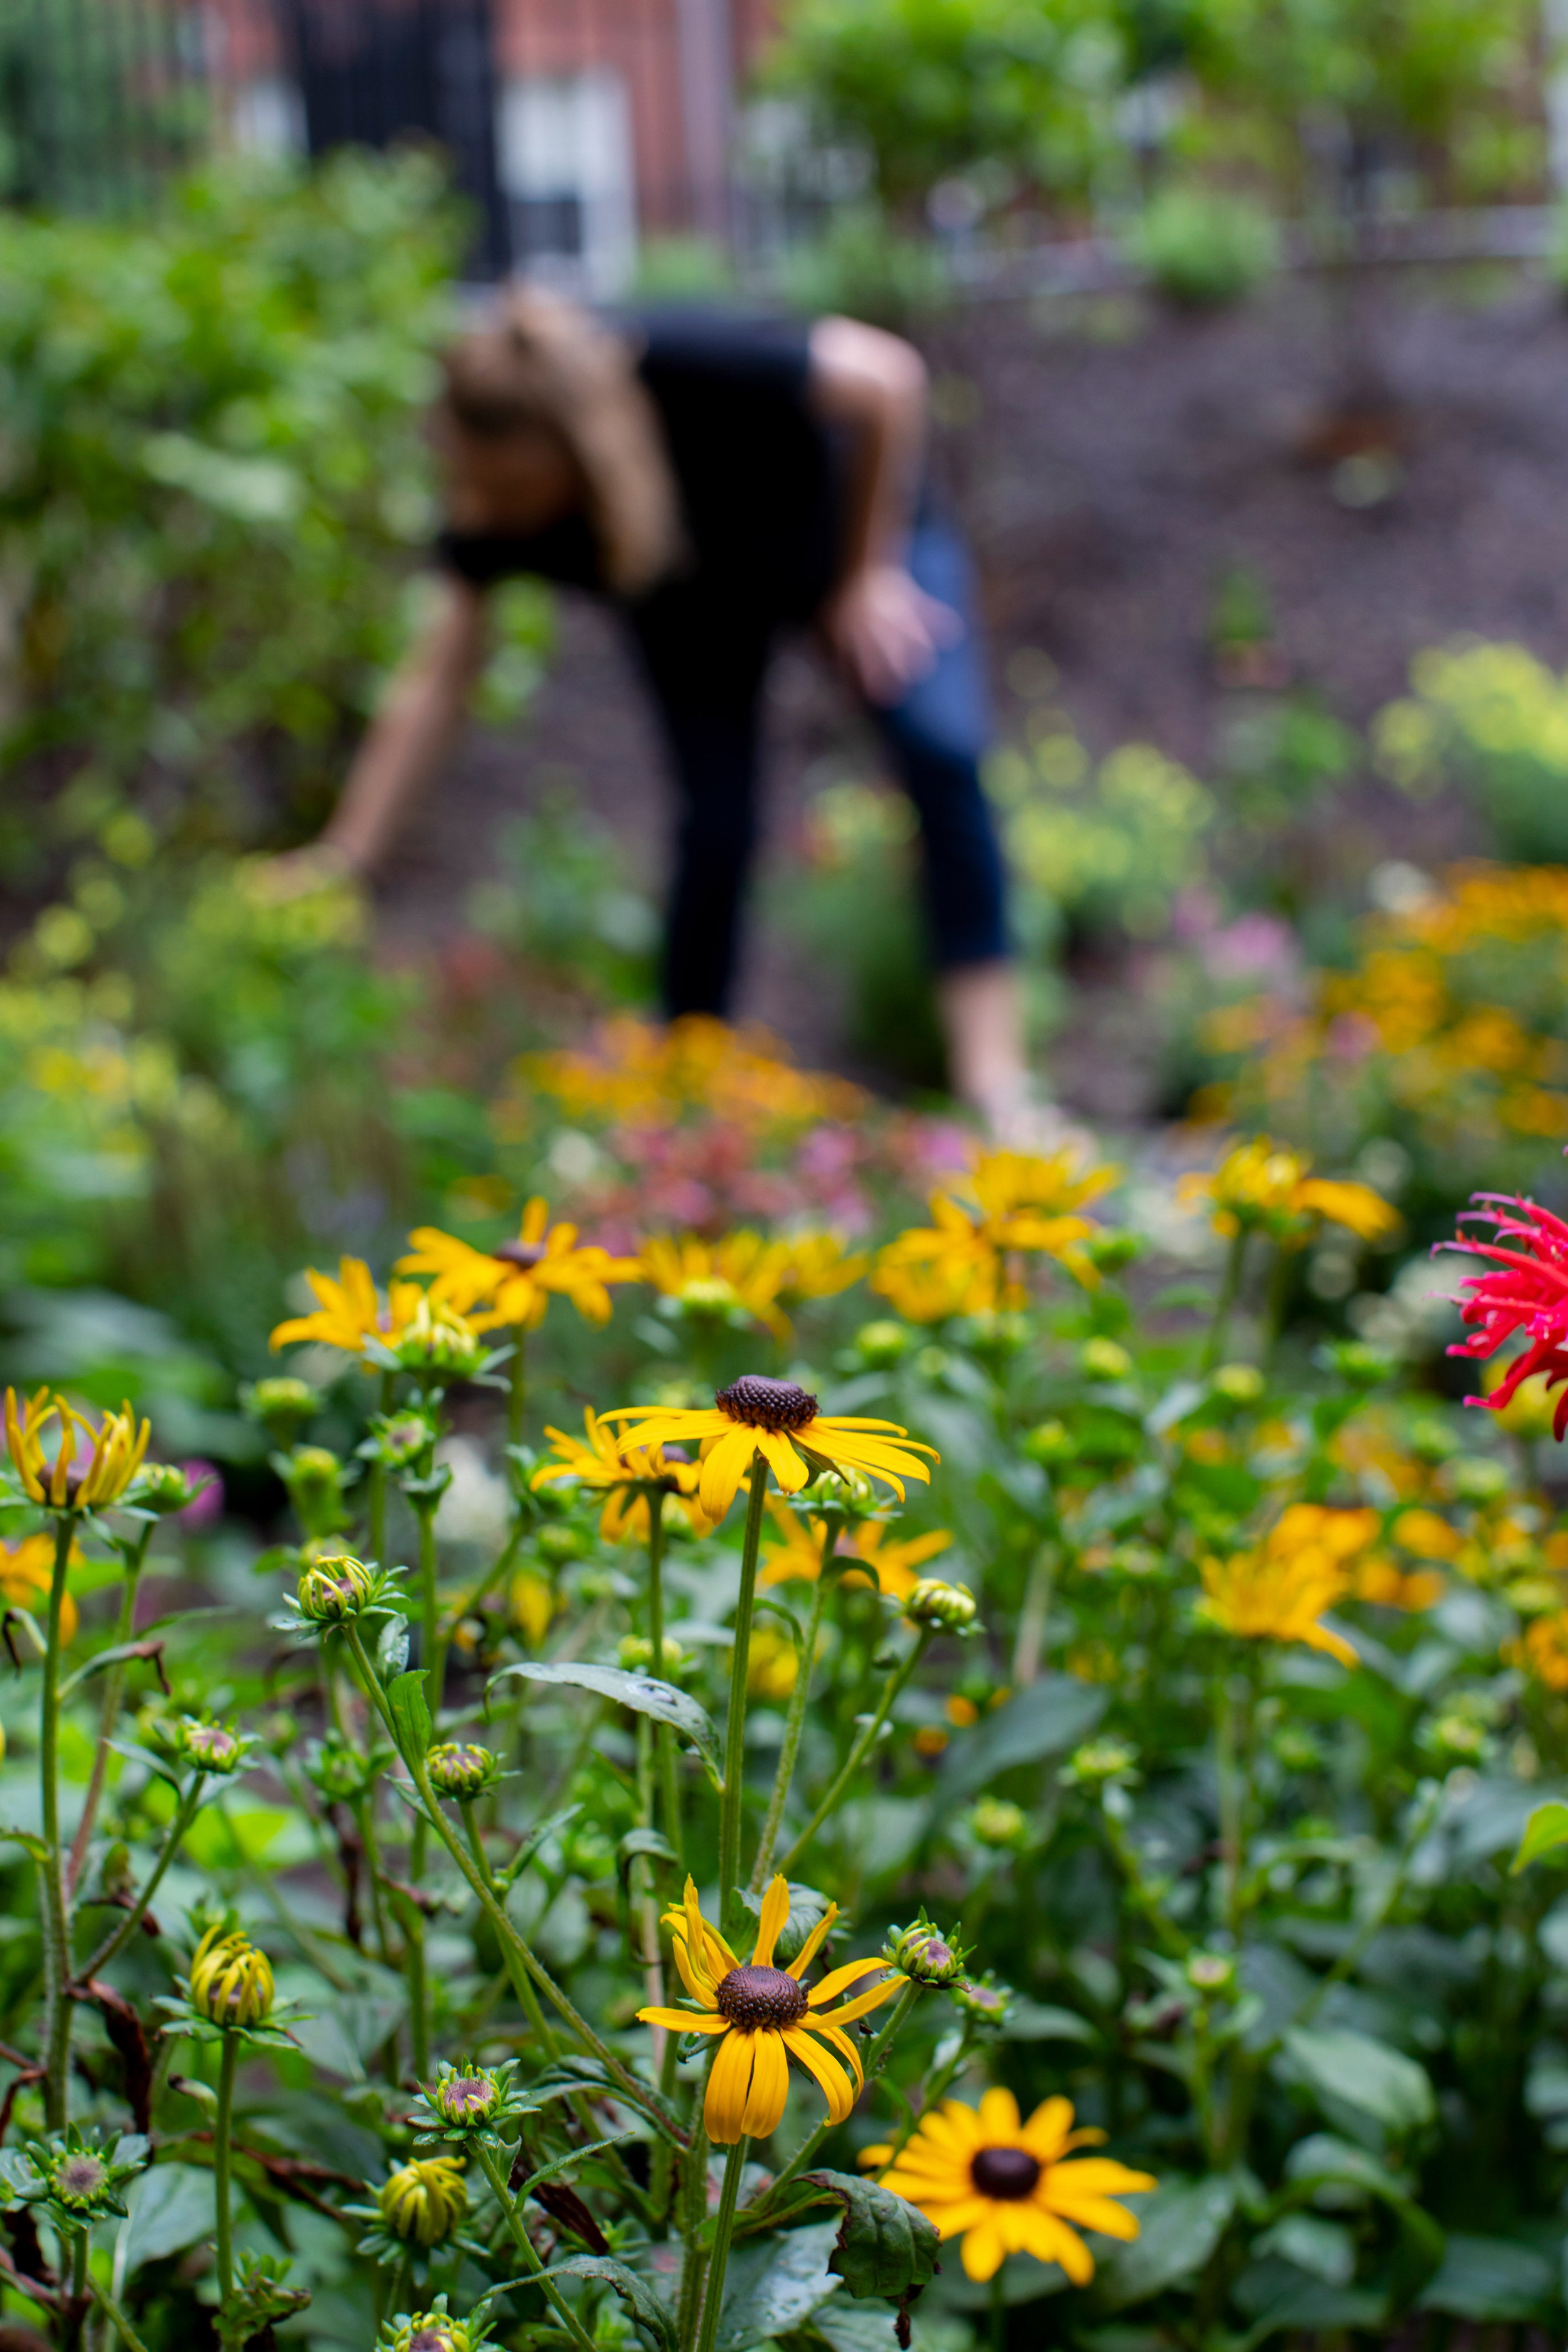 Flowers in the foreground, a person in the background